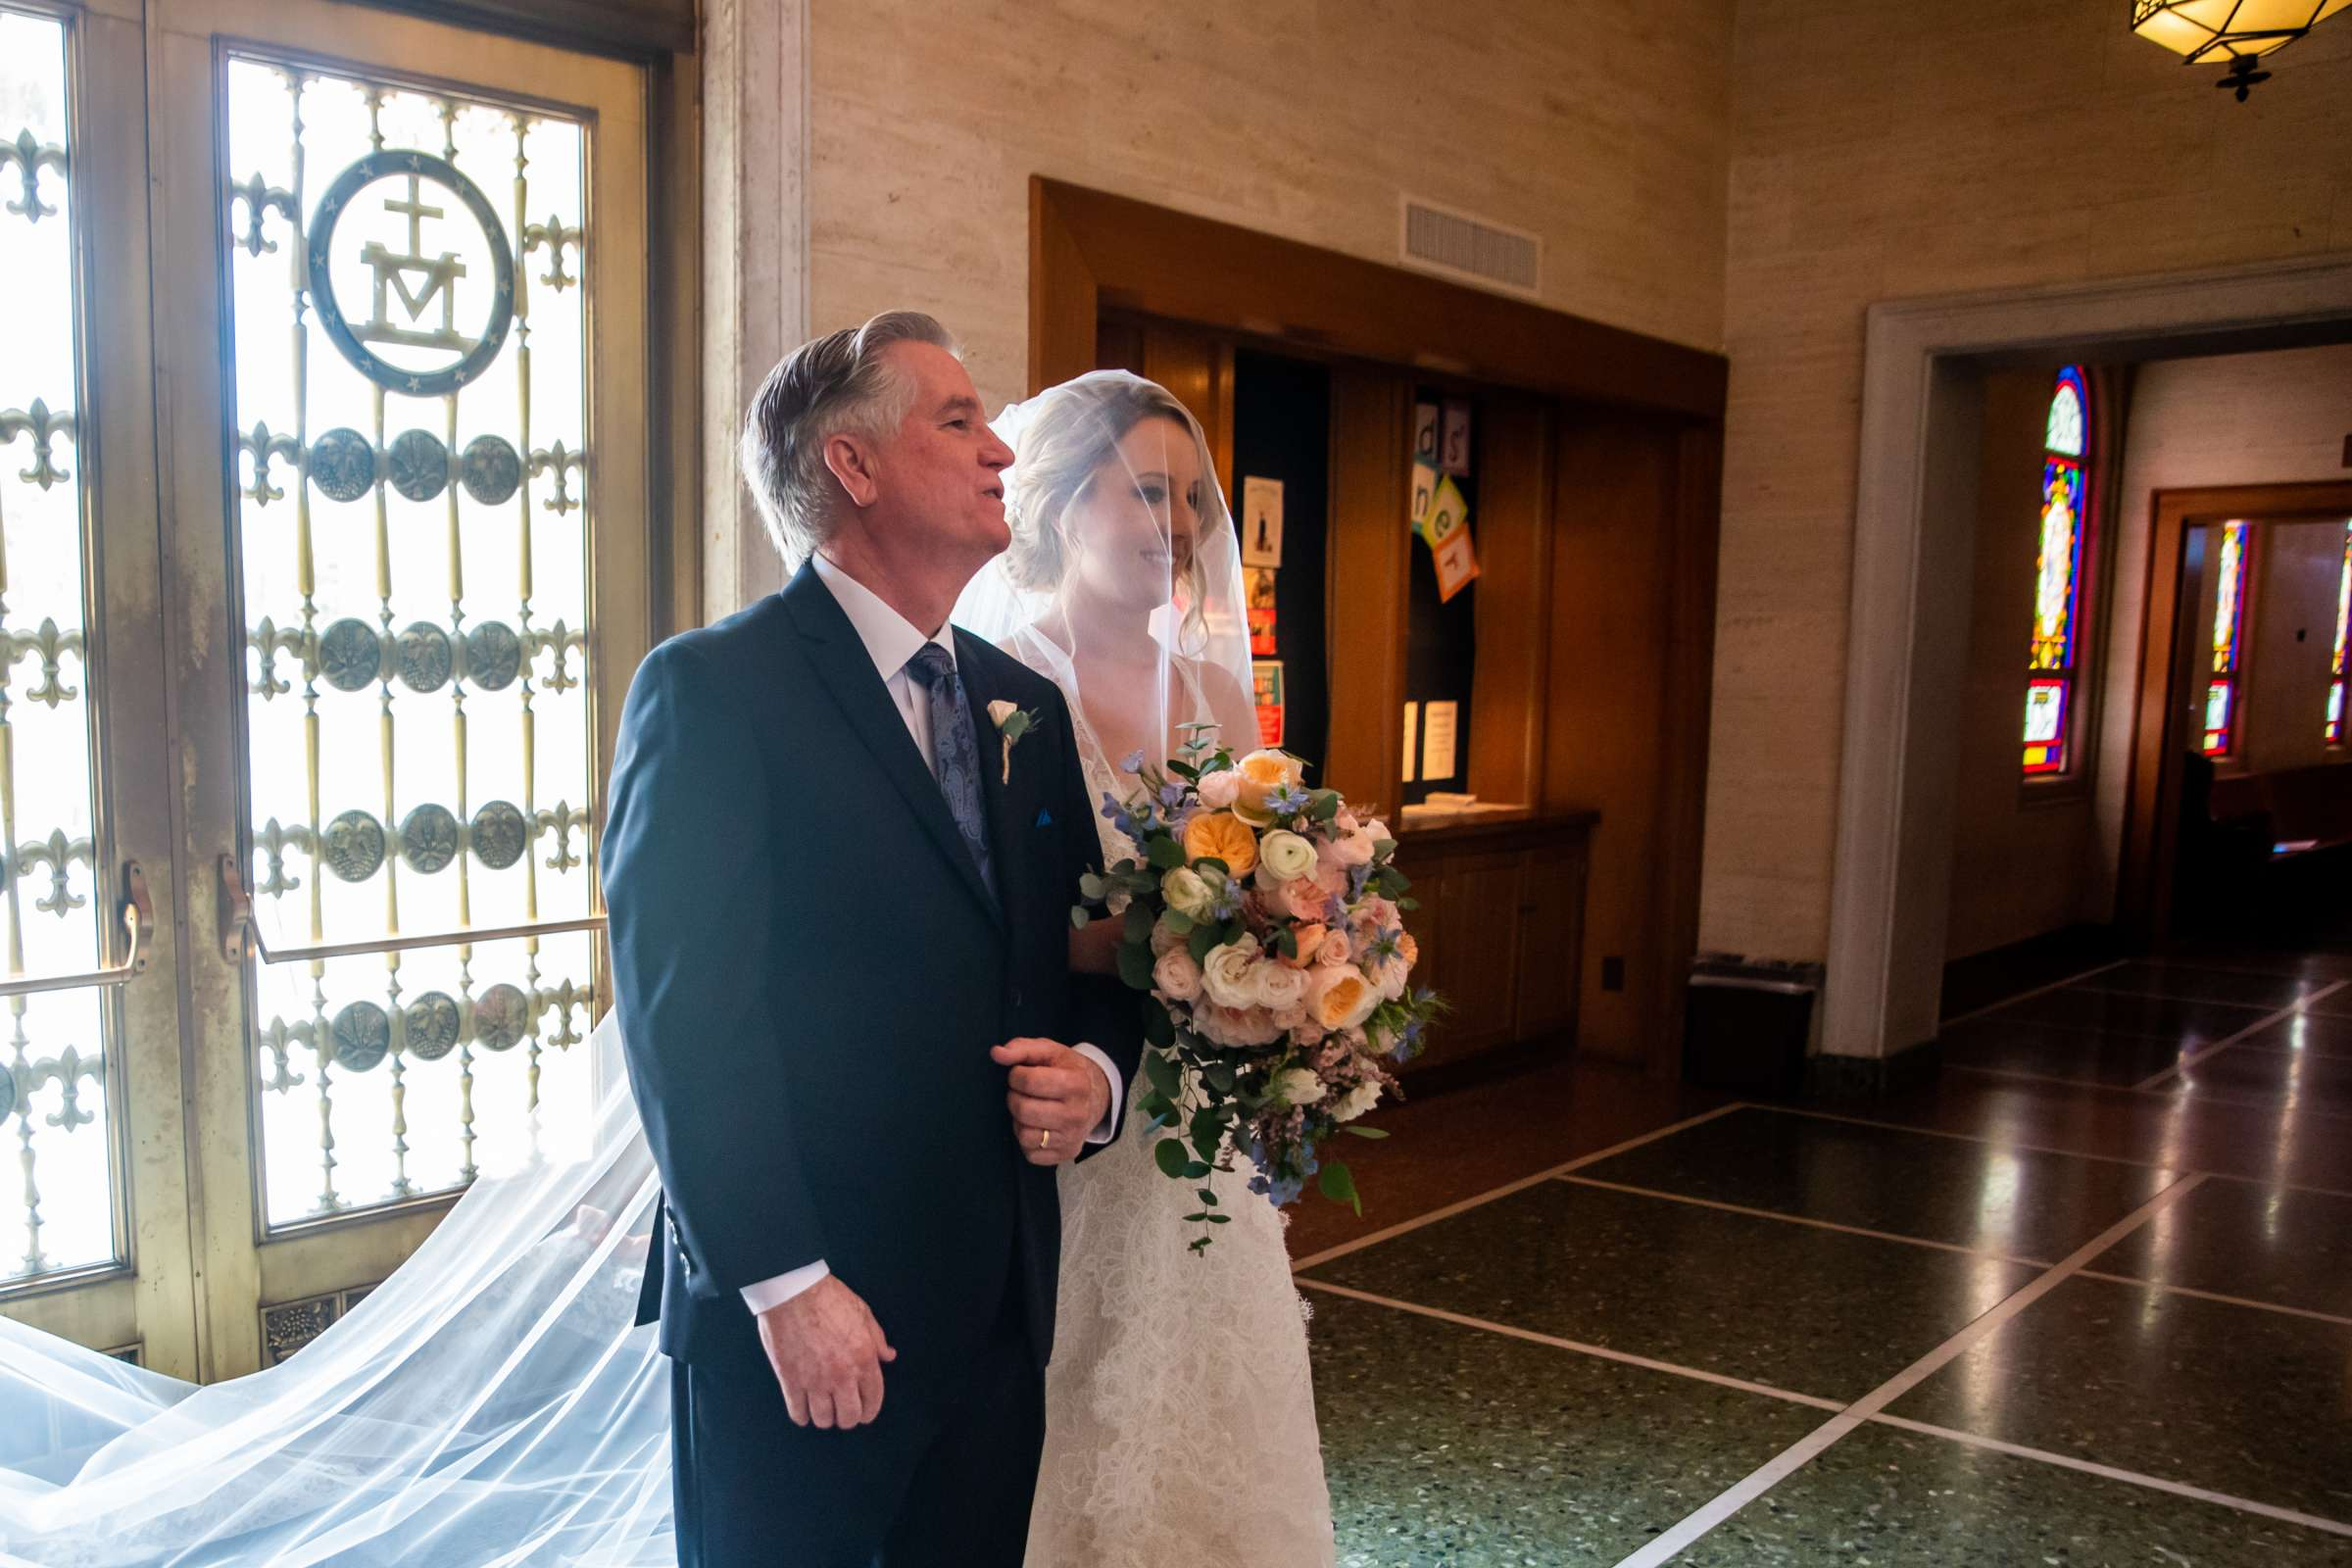 The Prado Wedding coordinated by Bliss Events, Sara and Marvin Wedding Photo #559533 by True Photography